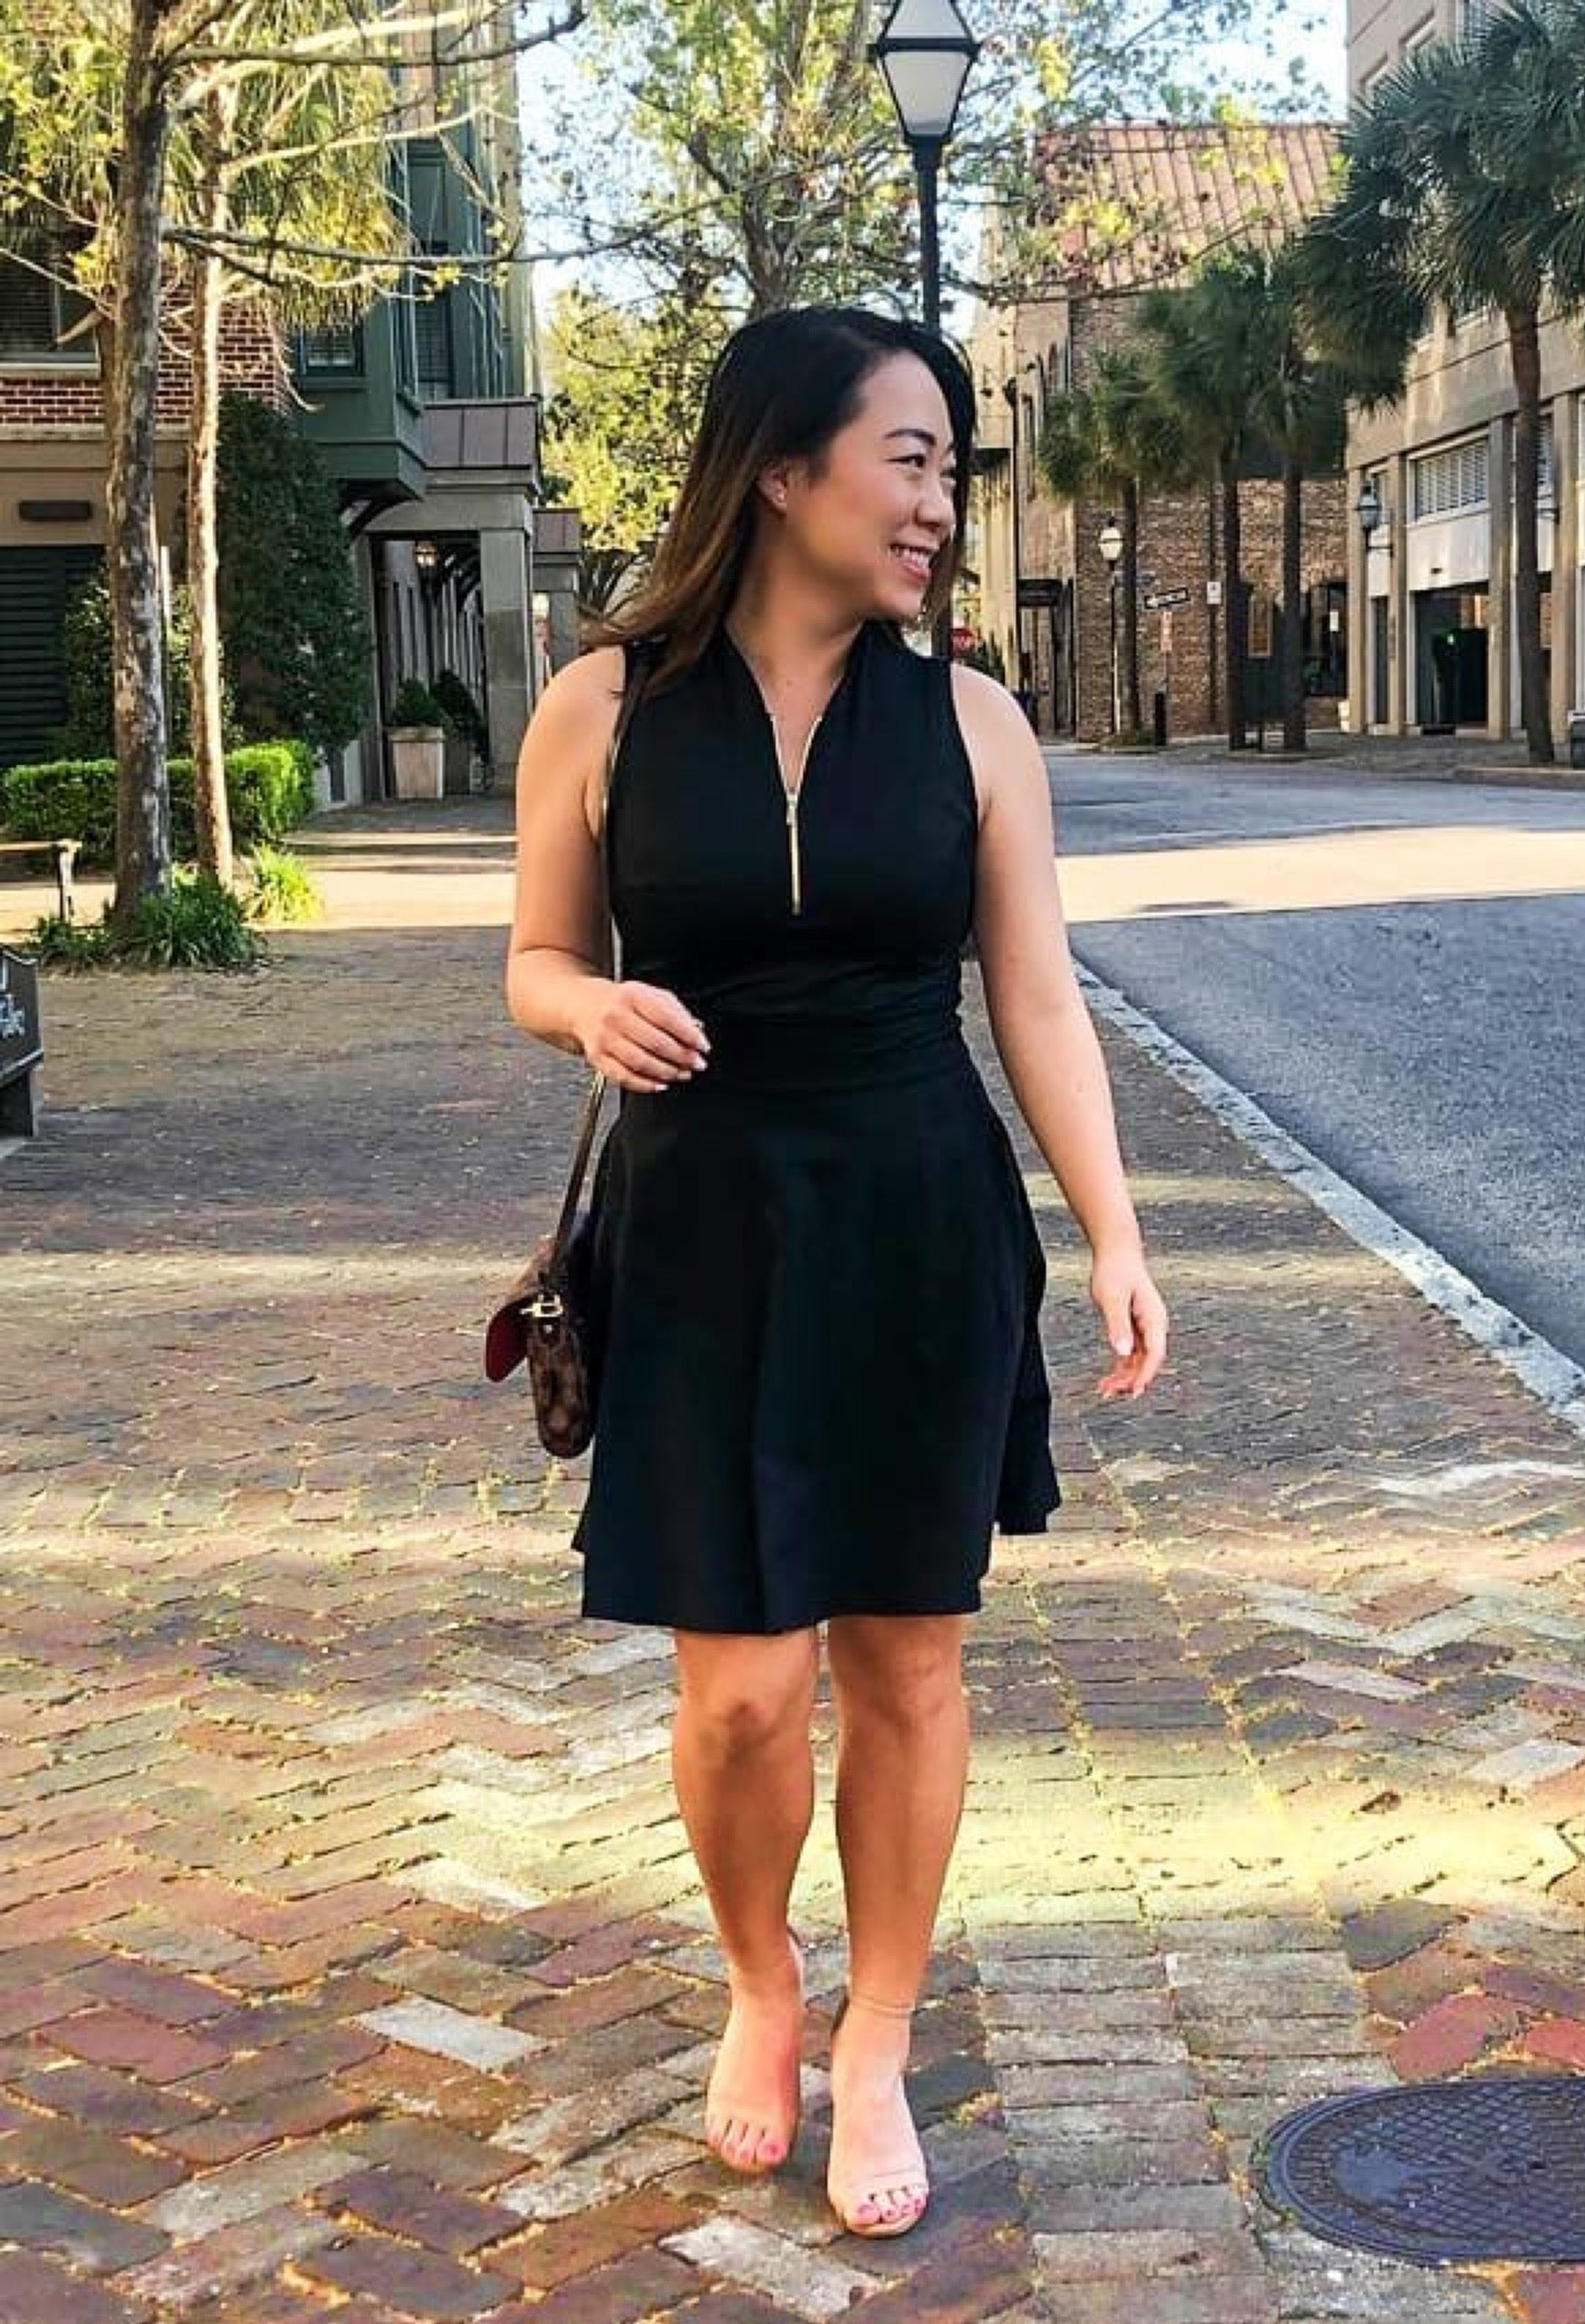 Cathy Kim wearing Amy Sport Fit and Flare dress in black.